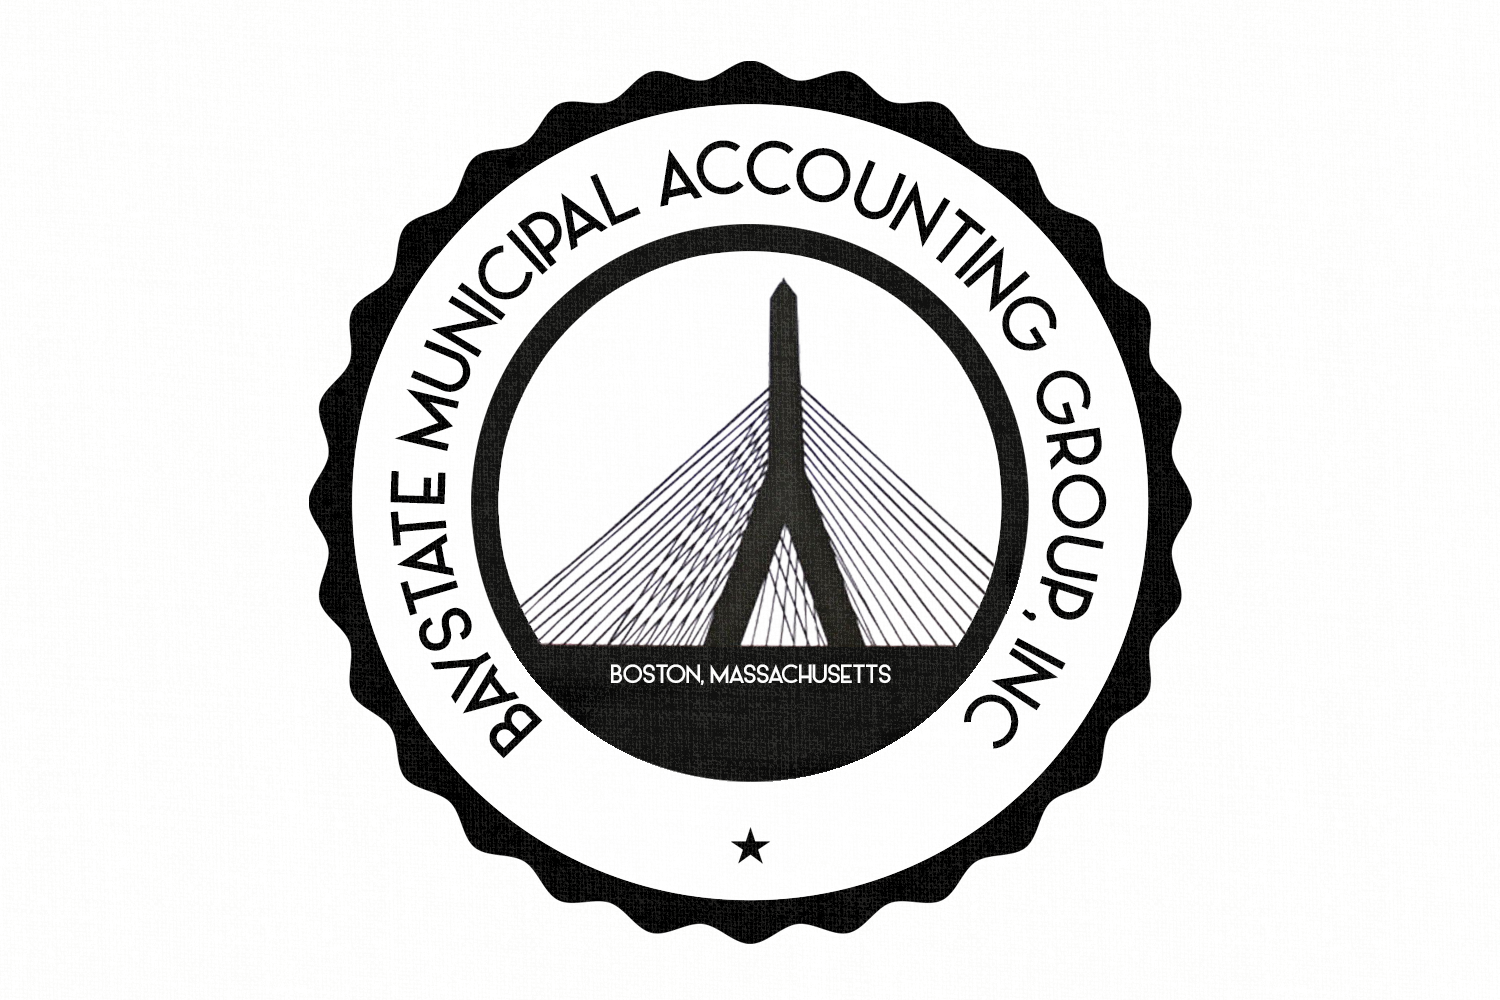 Baystate Municipal Accounting Group